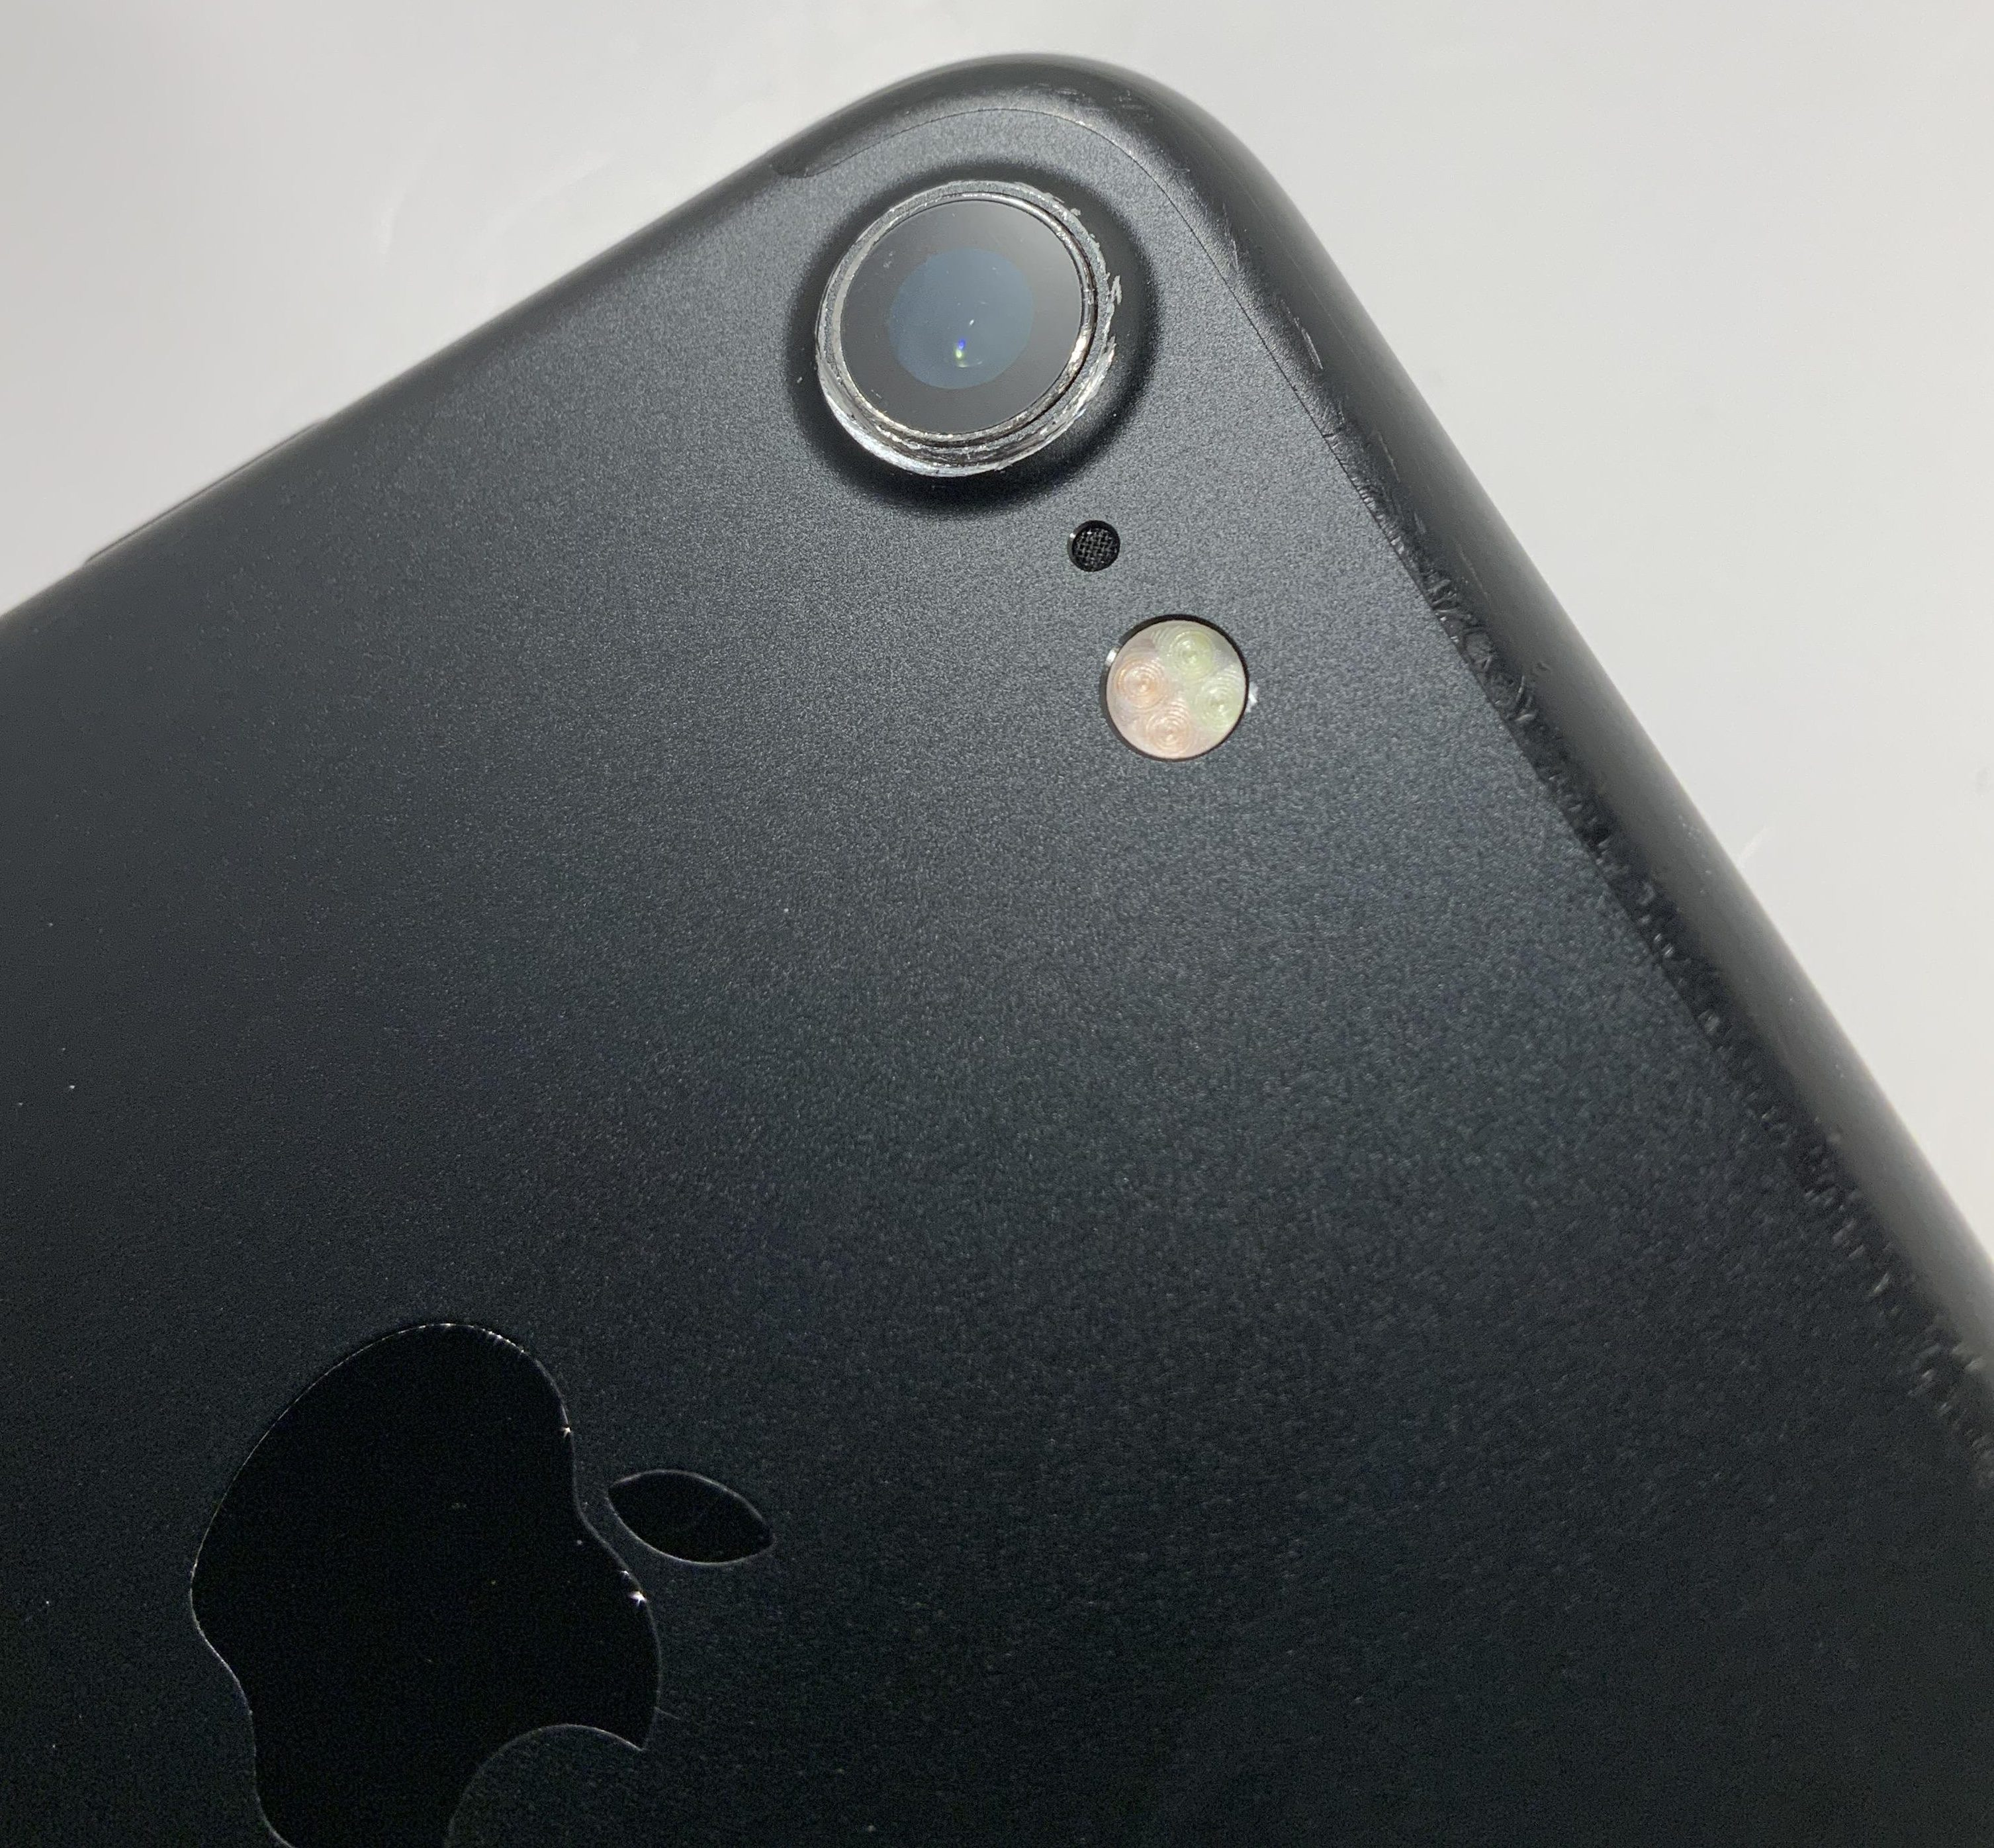 iPhone 7 32GB, 32GB, Black, image 5